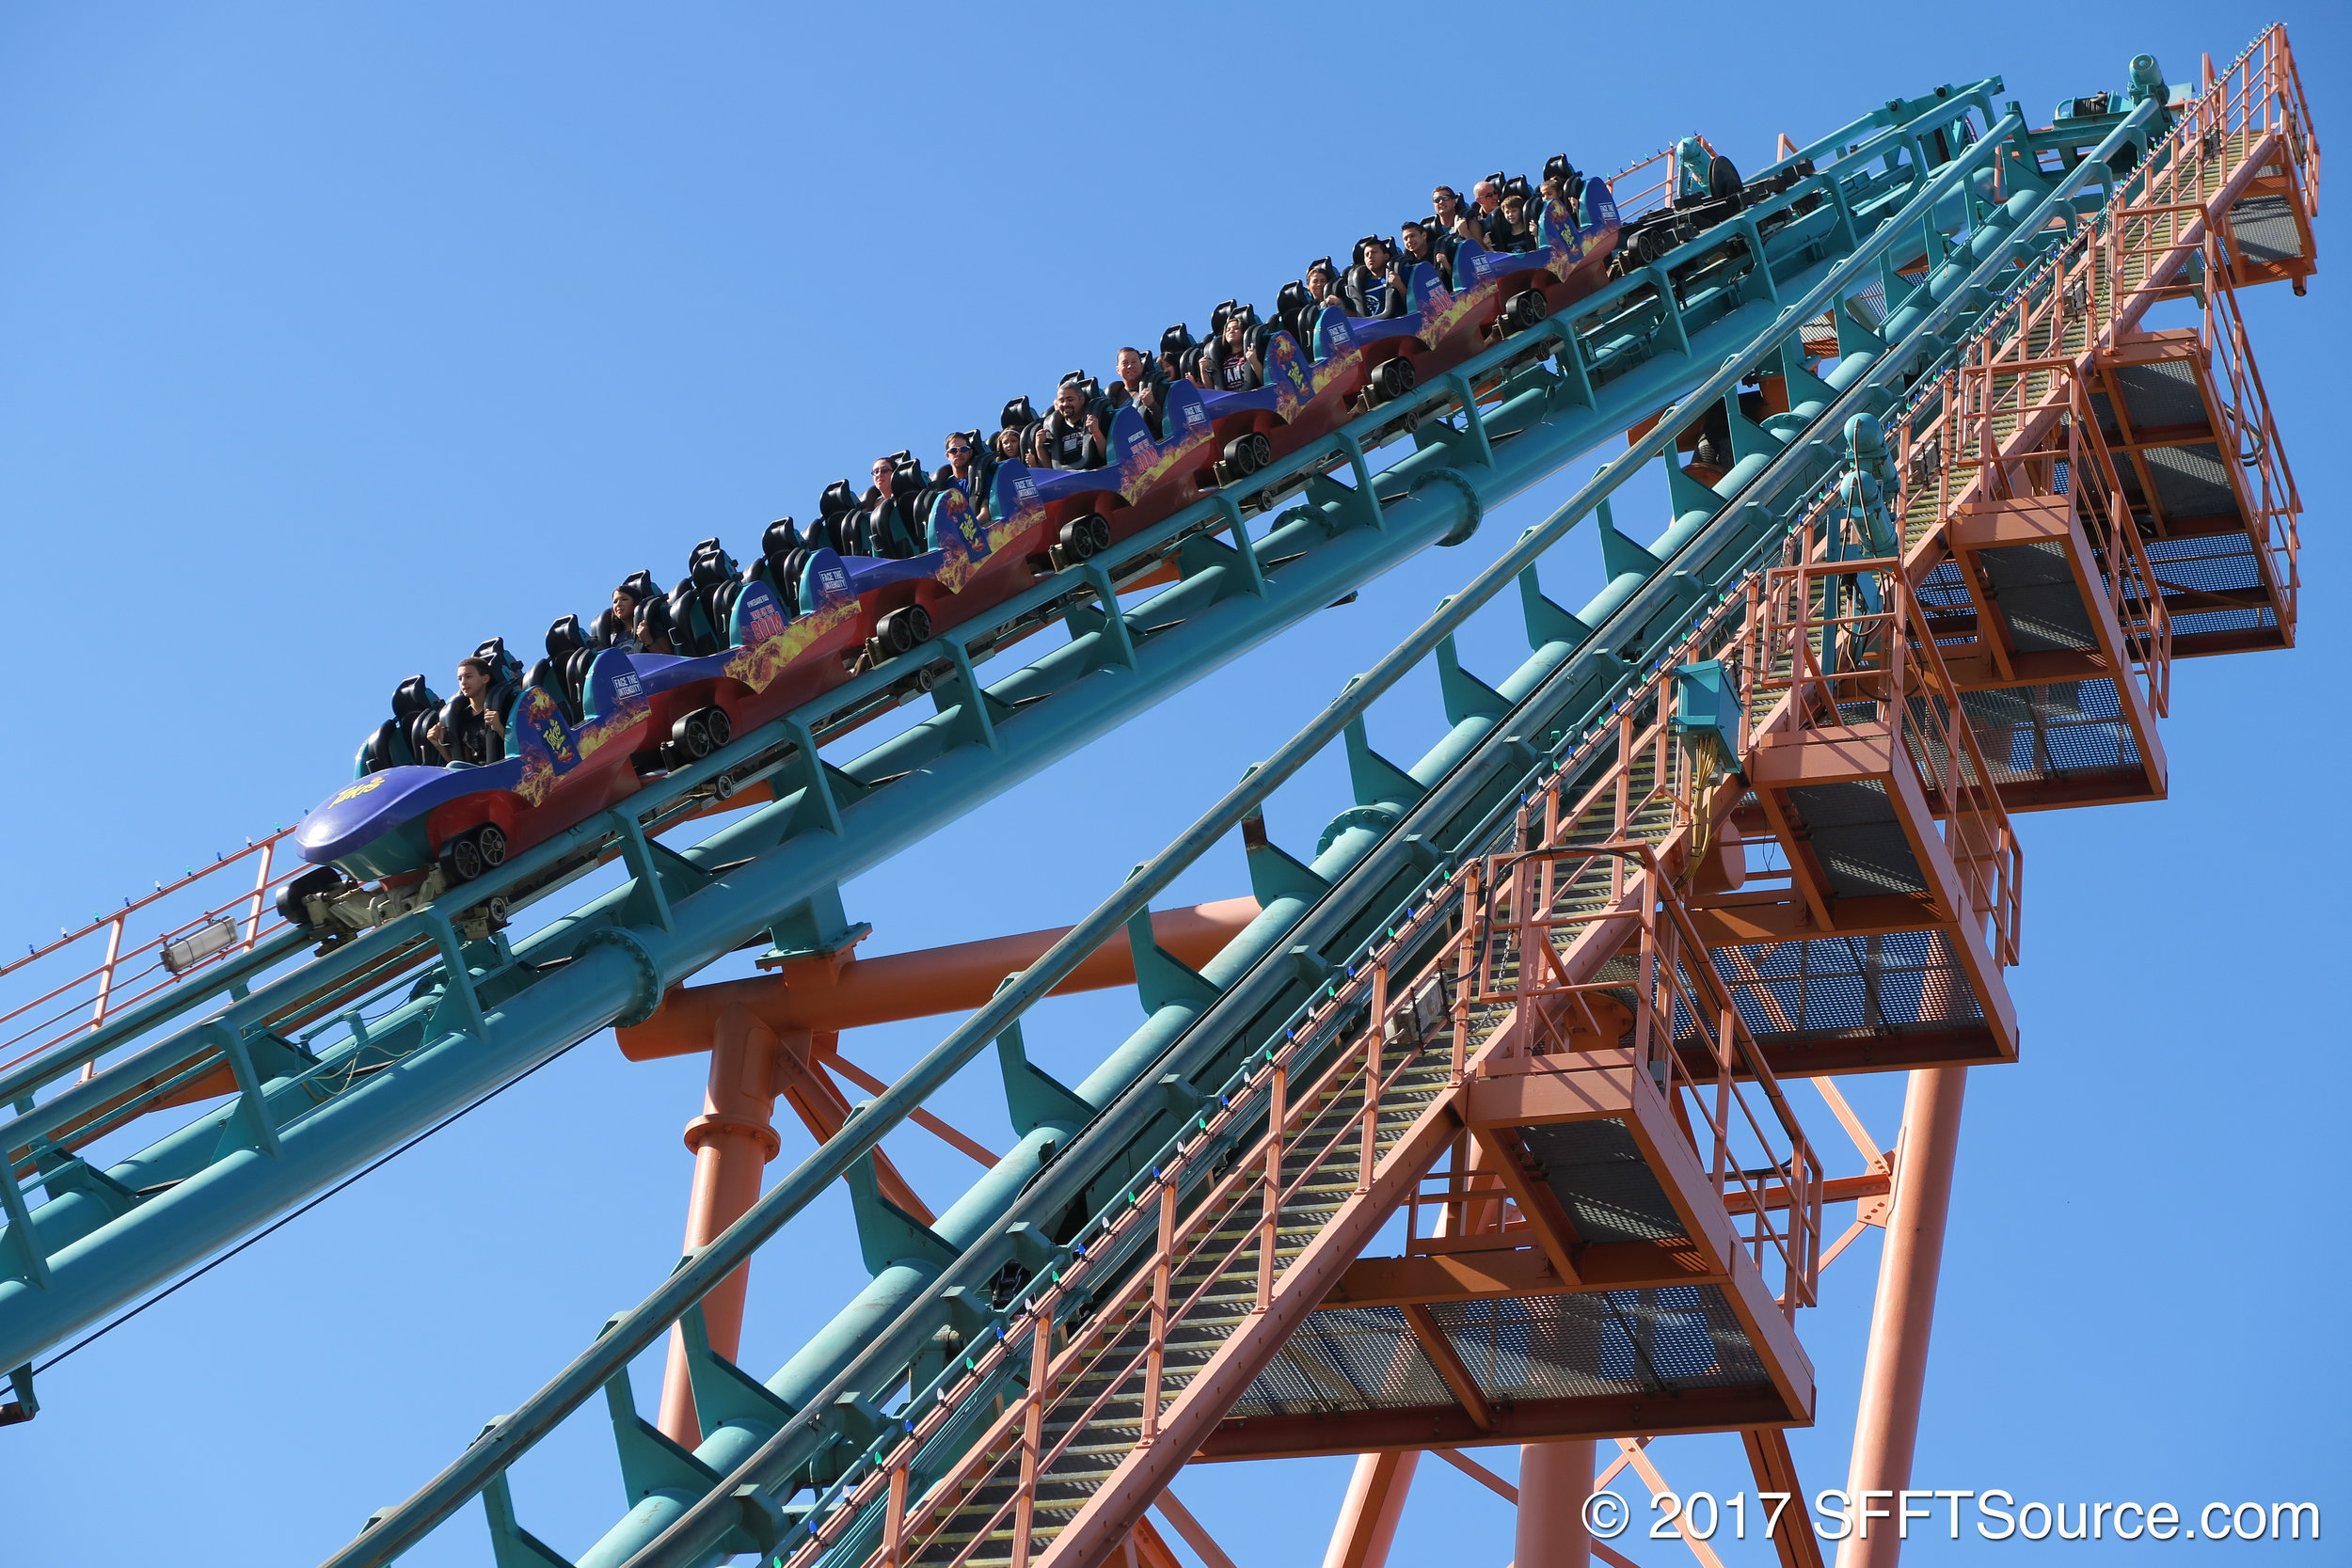 Guests begin the ride by being pulled backwards up the first lift.